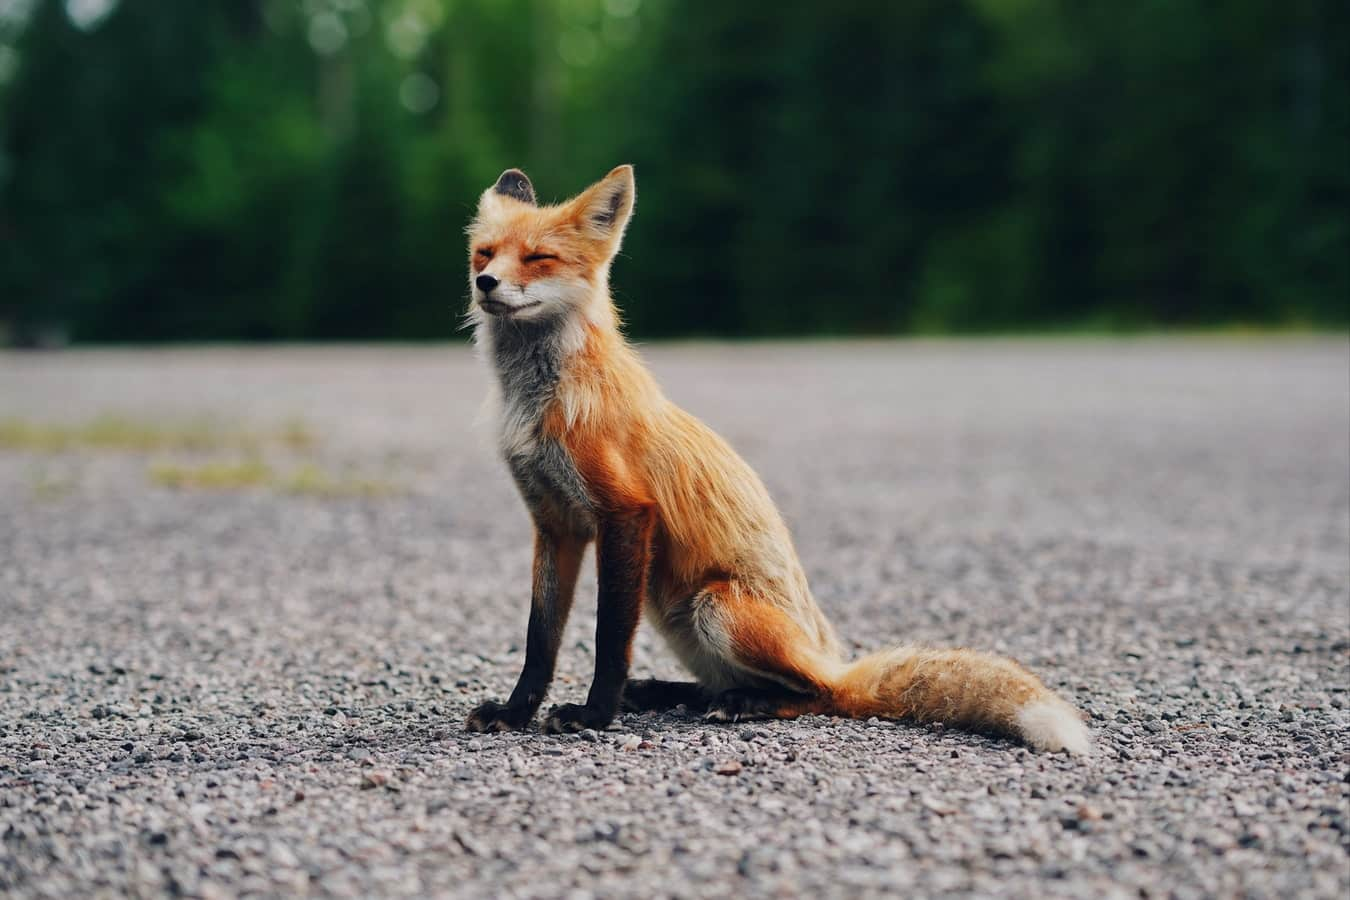 Foxes have made many features in pop culture, including The Little Prince and 'Fantastic Mr Fox